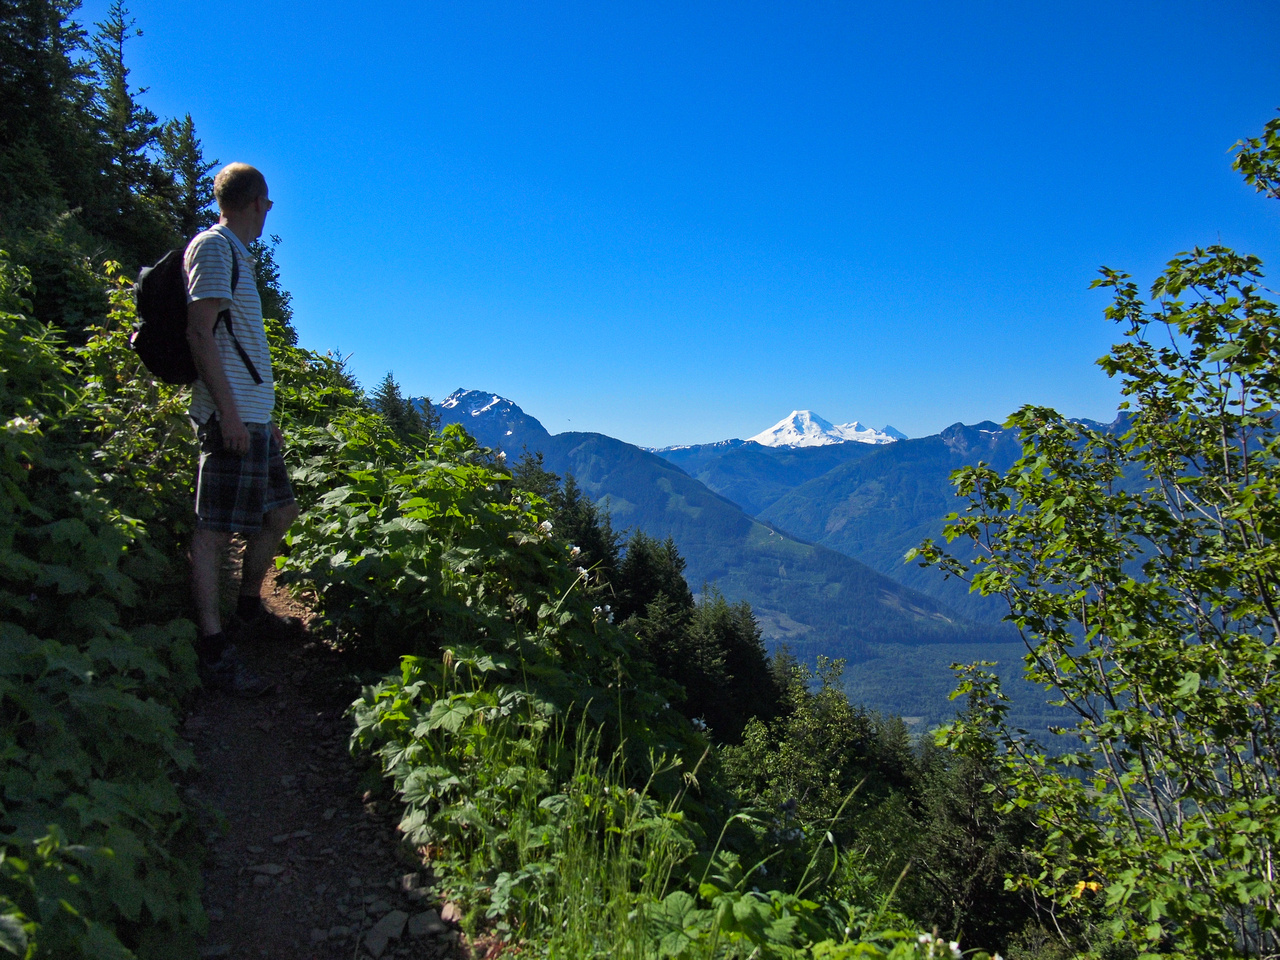 Josh looks over at the always-impressive Mount Baker from a point on the trail where the hiking becomes a bit more of a scramble.